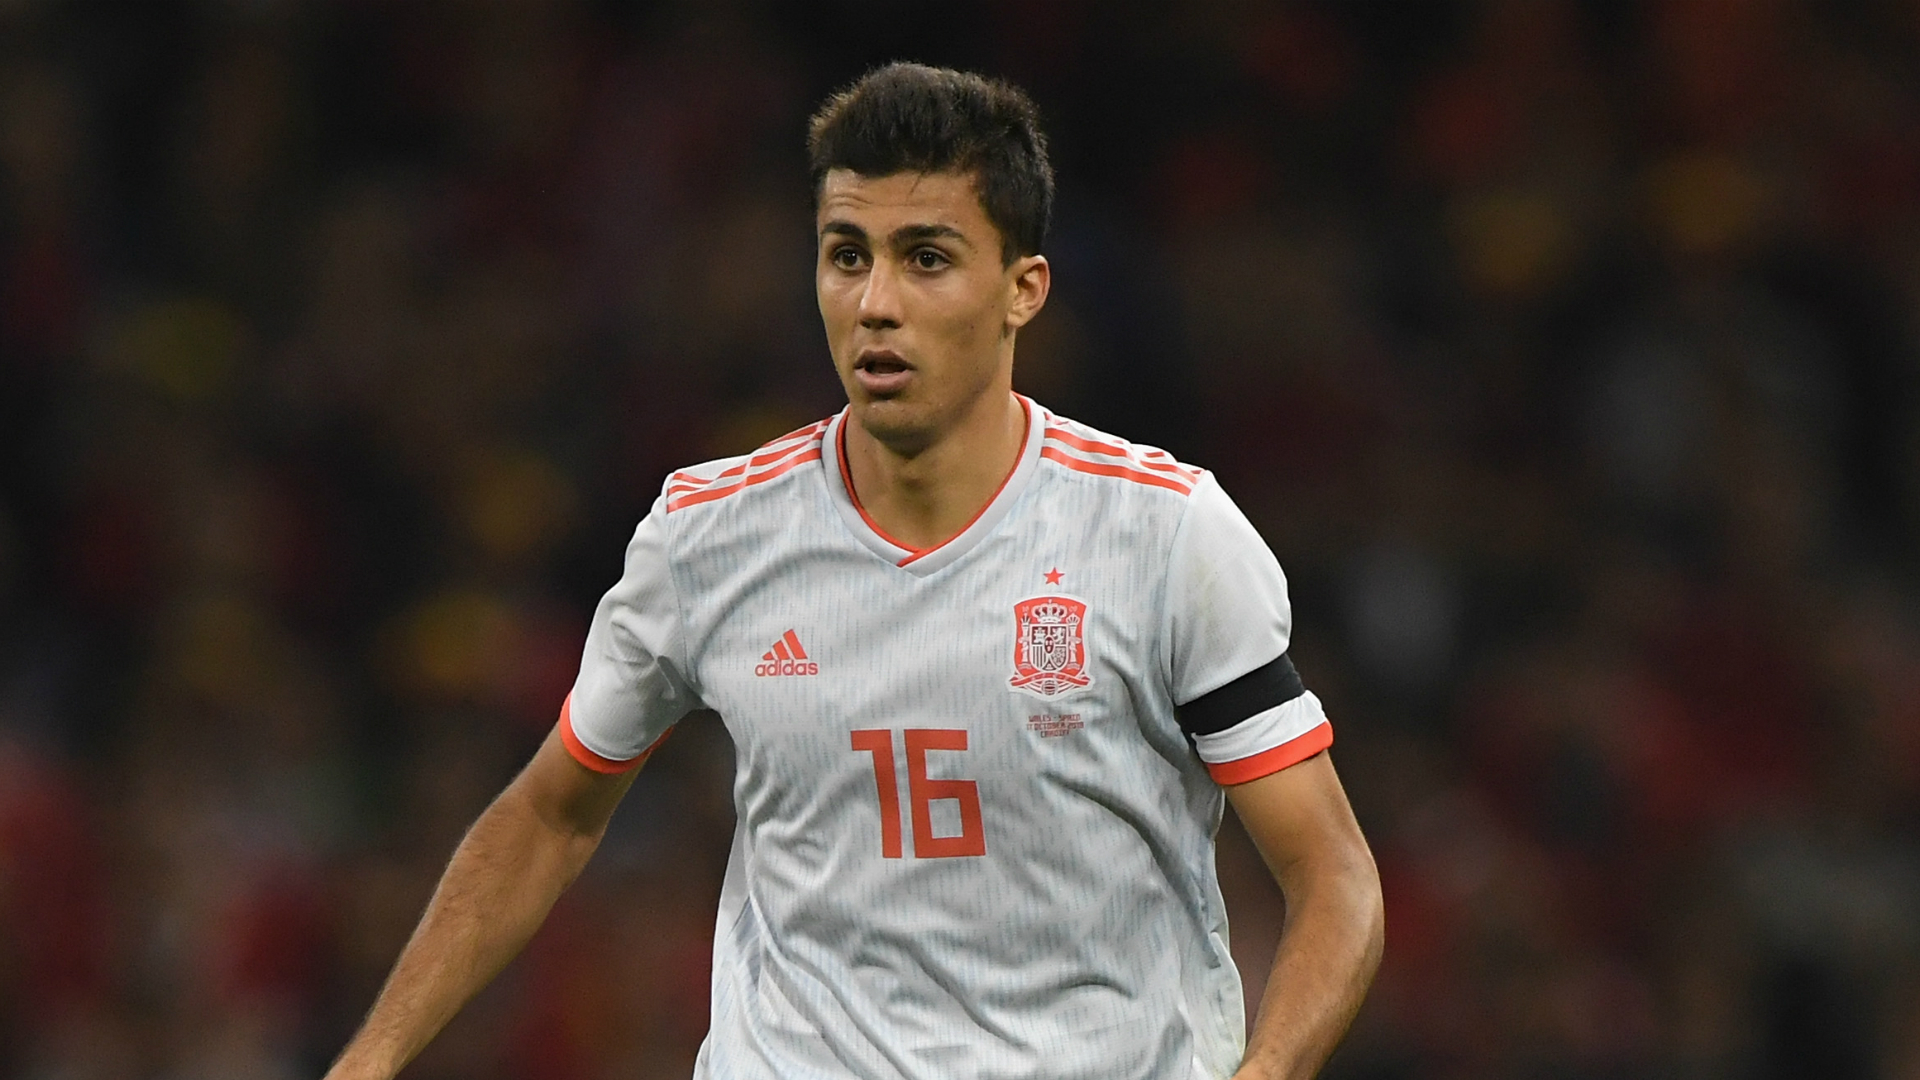 Rodri can play in same Spain midfield as Busquets – Moreno